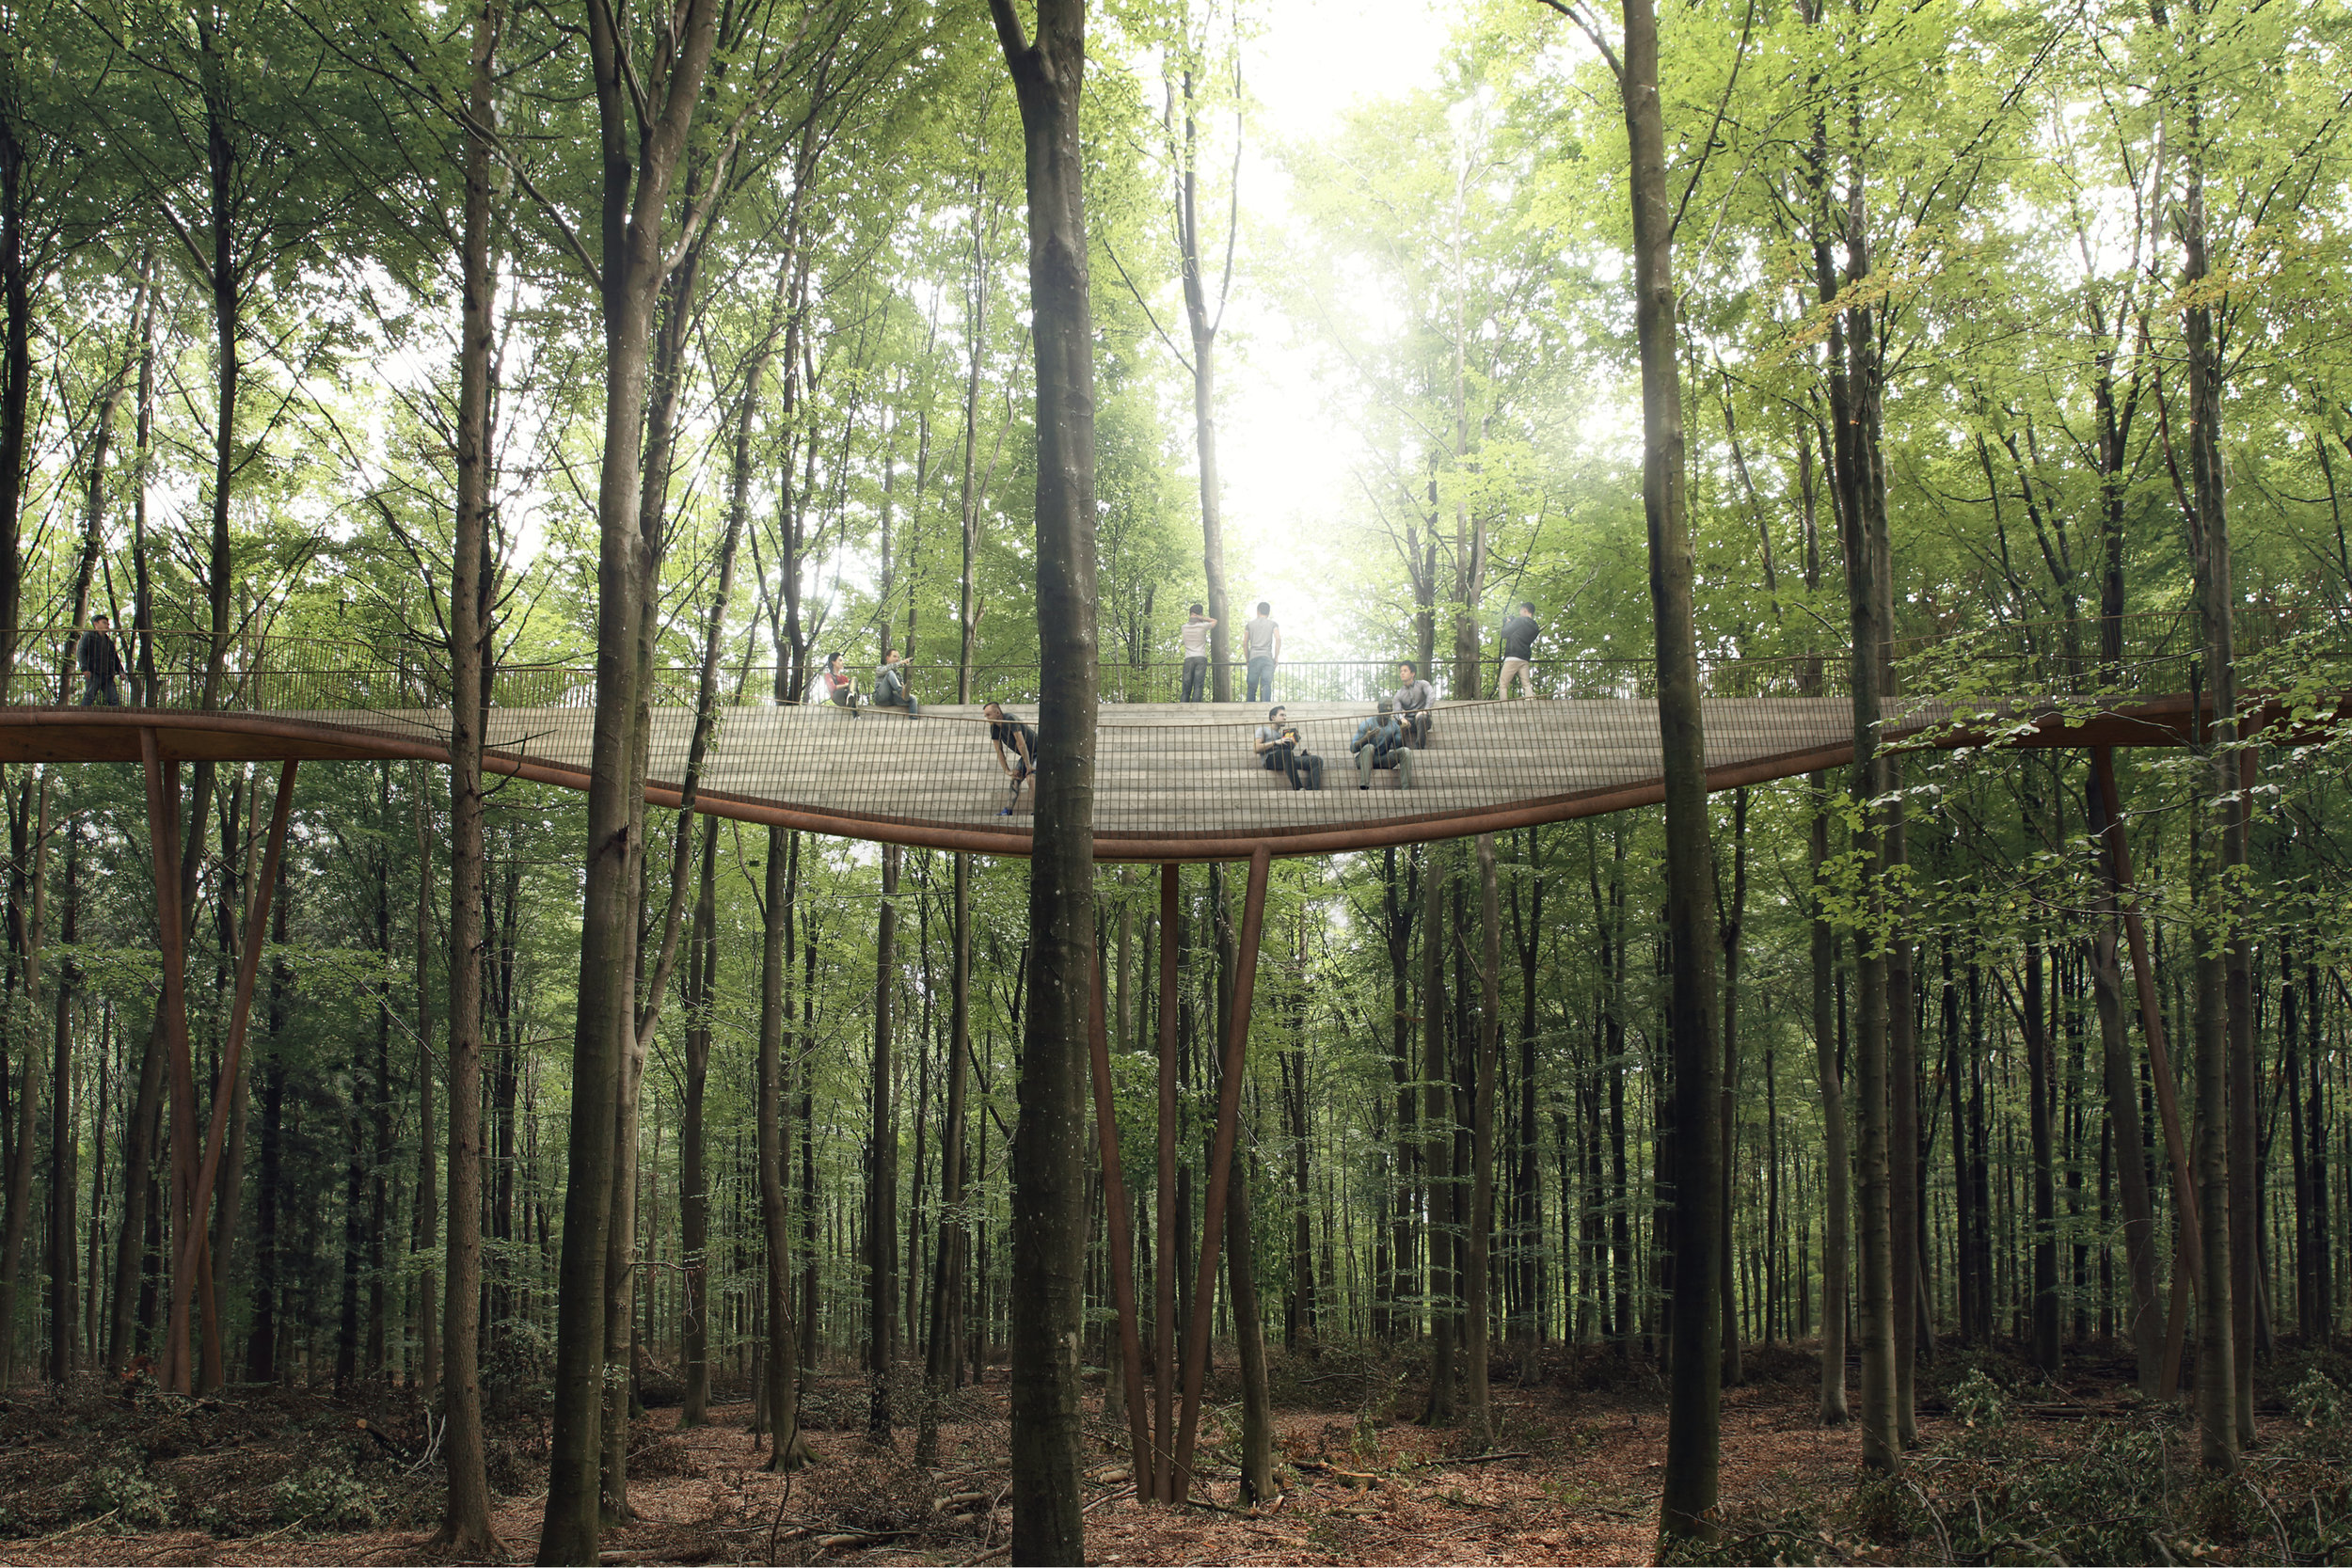 One of the features on the treetop walk: An amphi seating pocket